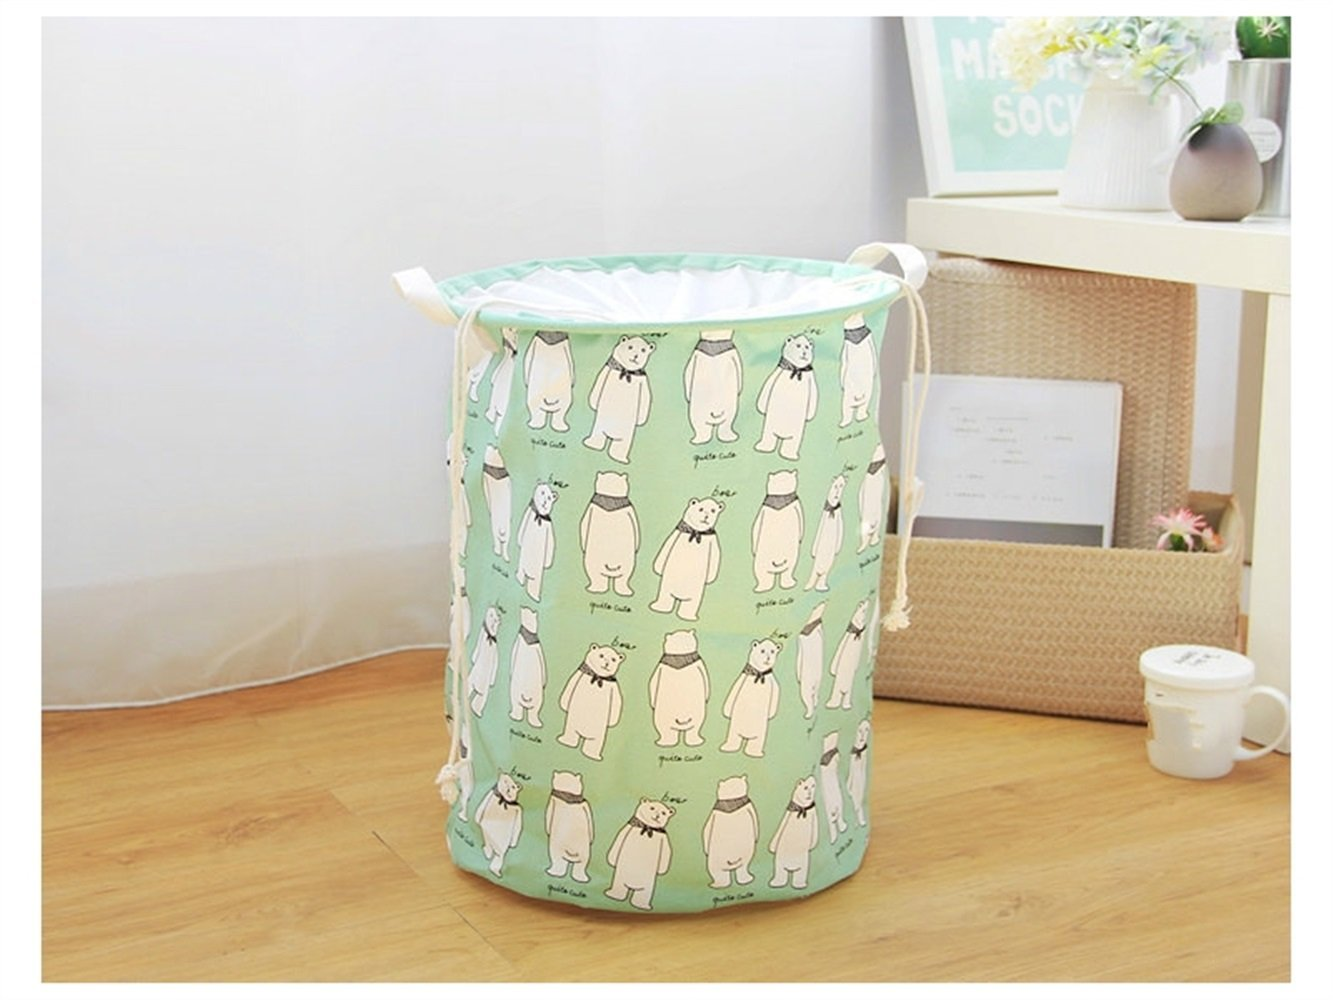 Gelaiken Lightweight Bear Pattern Storage Box Laundry Basket Cotton and Linen Storage Box (Green)